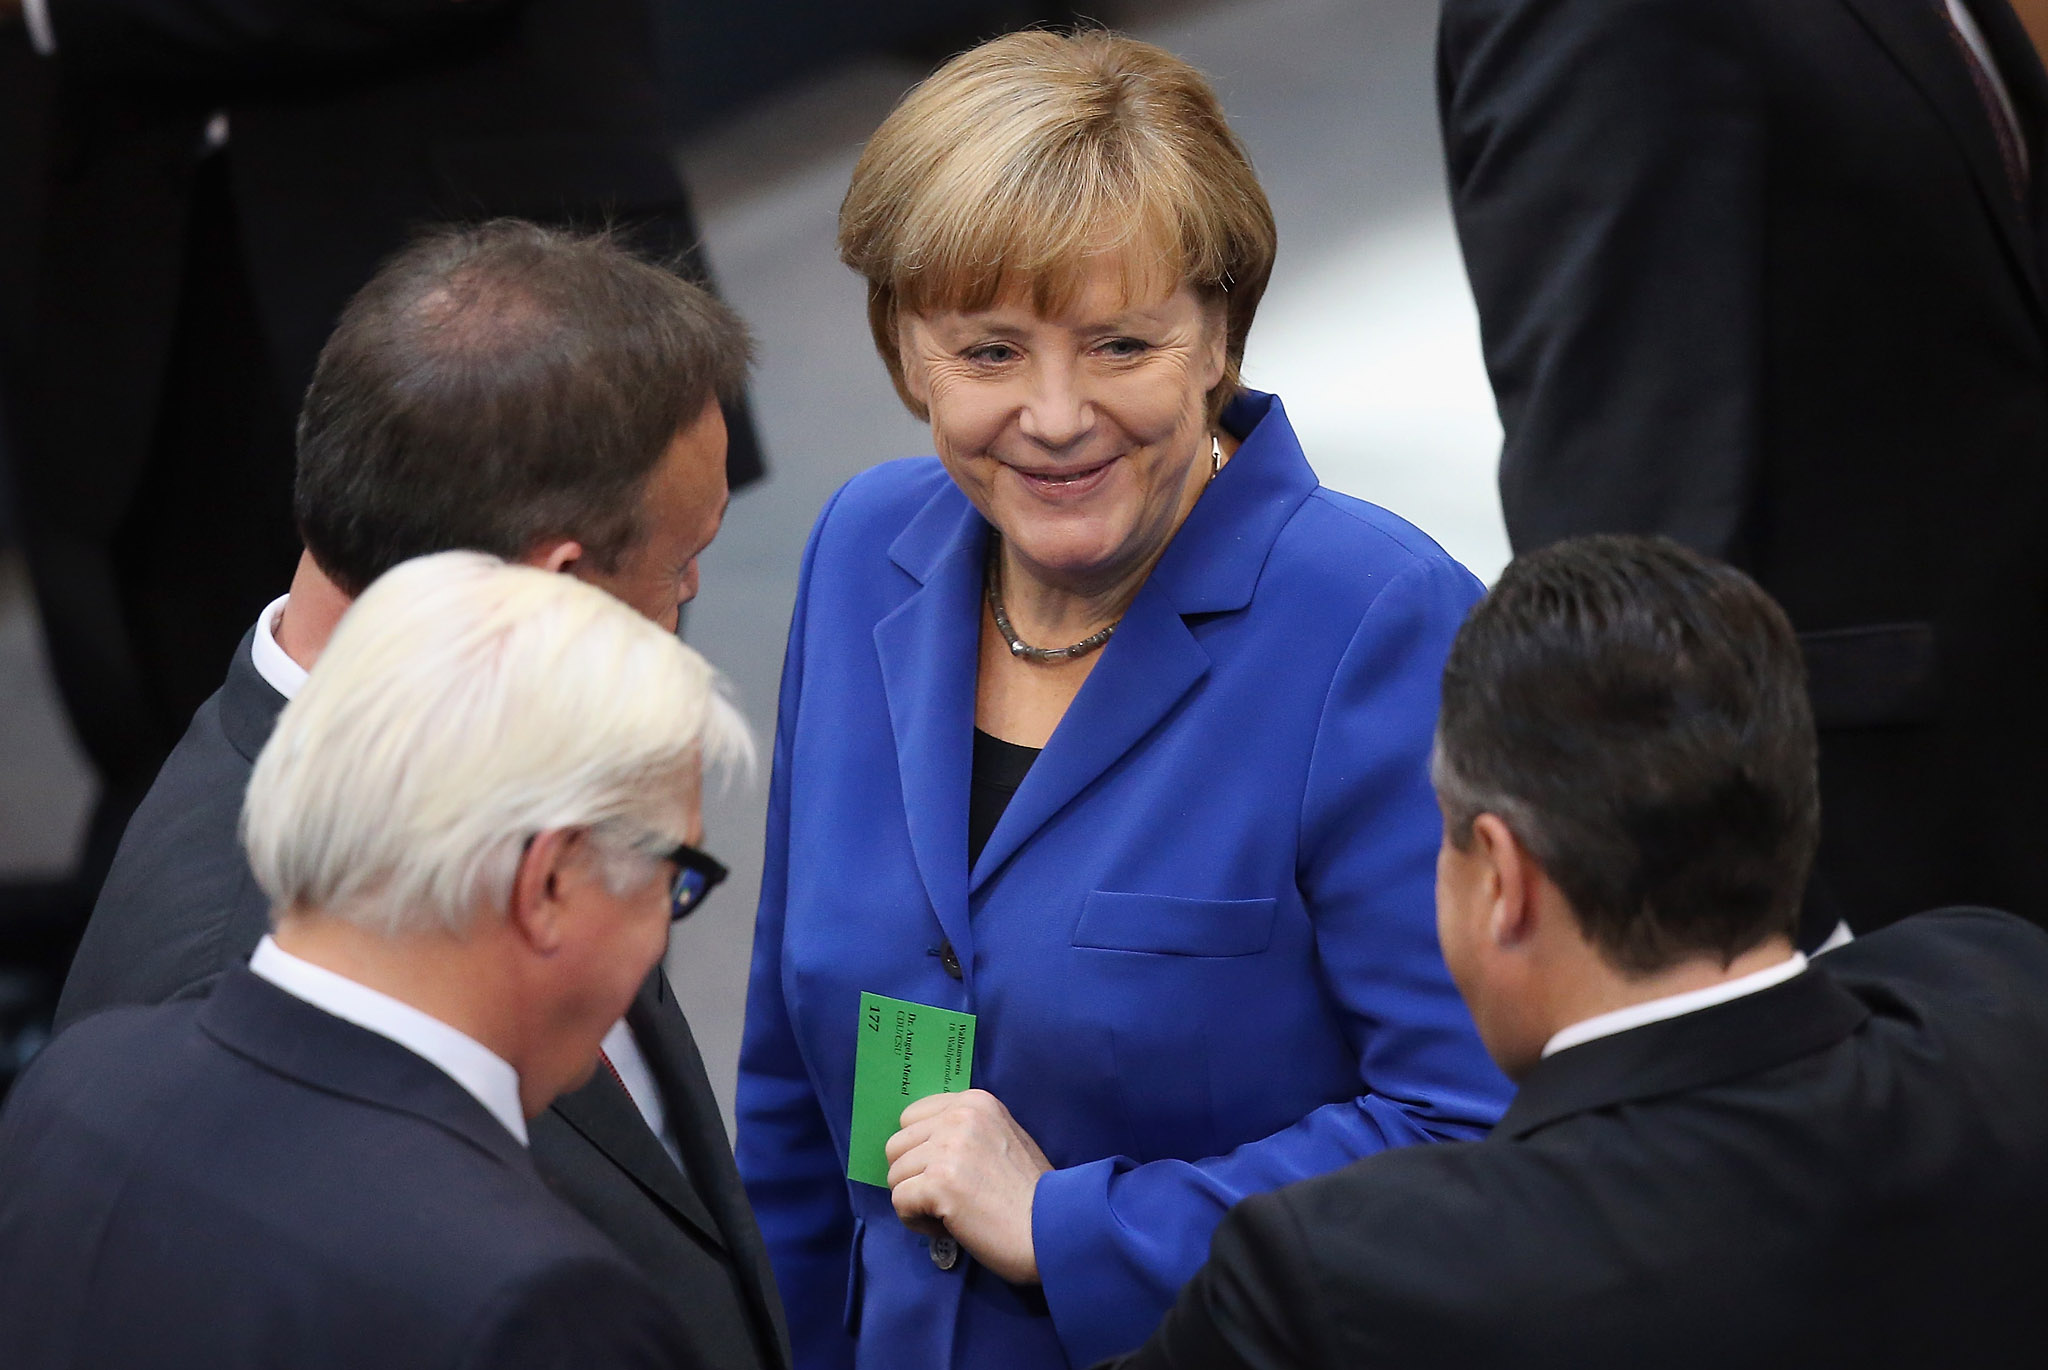 New Bundestag Convenes As Old Government Is Dismissed...BERLIN, GERMANY - OCTOBER 22:  German Chancellor and Chairwoman of the German Christian Democrats (CDU) Angela Merkel (C) chats with leading German Social Democrats (SPD) members Sigmar Gabriel (R), Thomas Oppermann (L) and Frank-Walter Steinmeier at the first session of the new Bundestag following recent nationwide  elections on October 22, 2013 in Berlin, Germany. The session heralds the beginning of the 18th legislative period, though the German government remains in transition as the Christian Democrats (CDU) and German Social Democrats (SPD) are still in the process of coalition negotiations whose outcome remains u